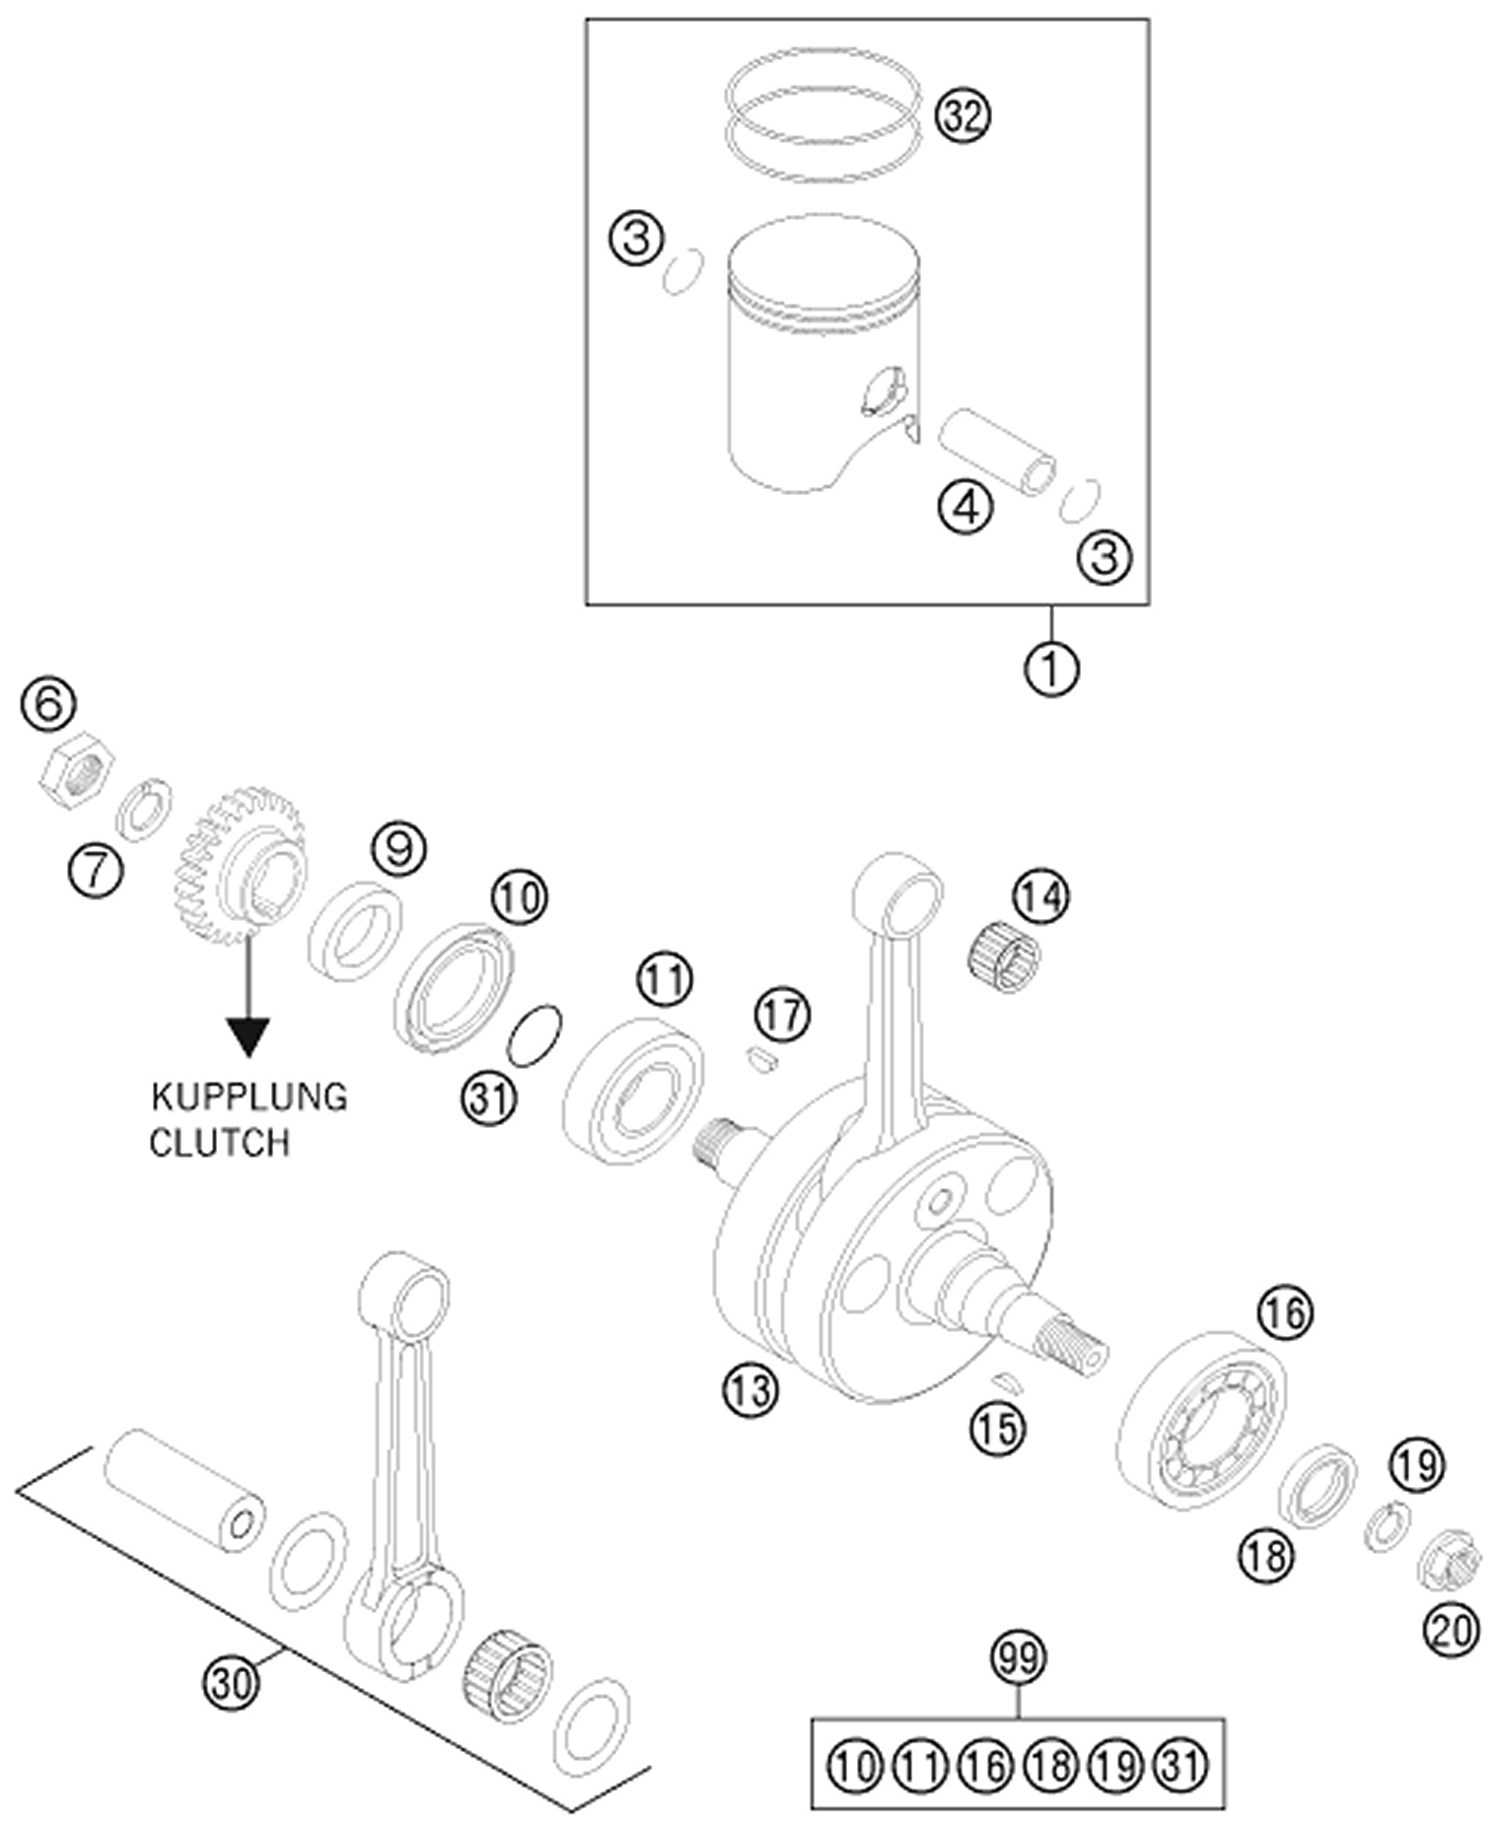 Crankshaft piston there are 21 products